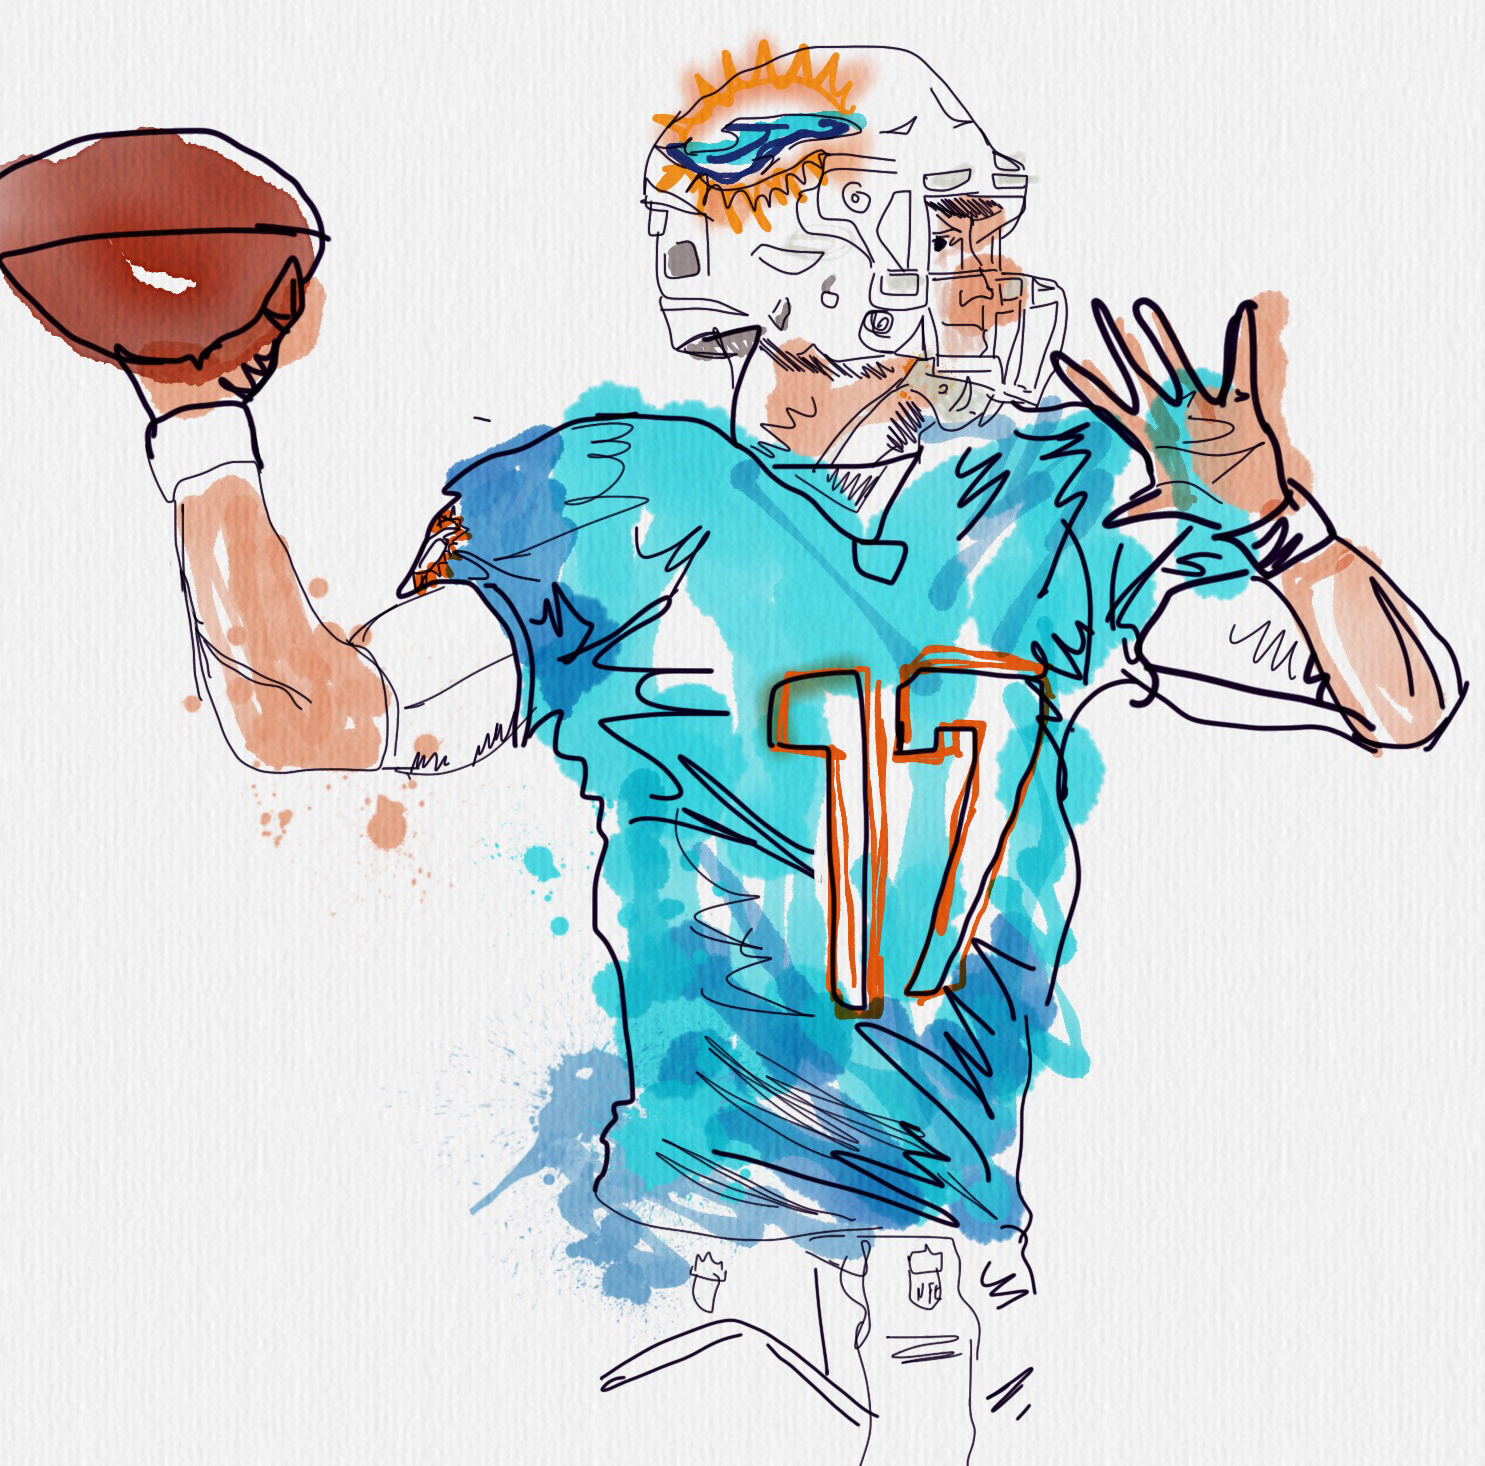 Charlie ans miami dolphins 2016 fan art ryan tannehill of the miami dolphins voltagebd Choice Image